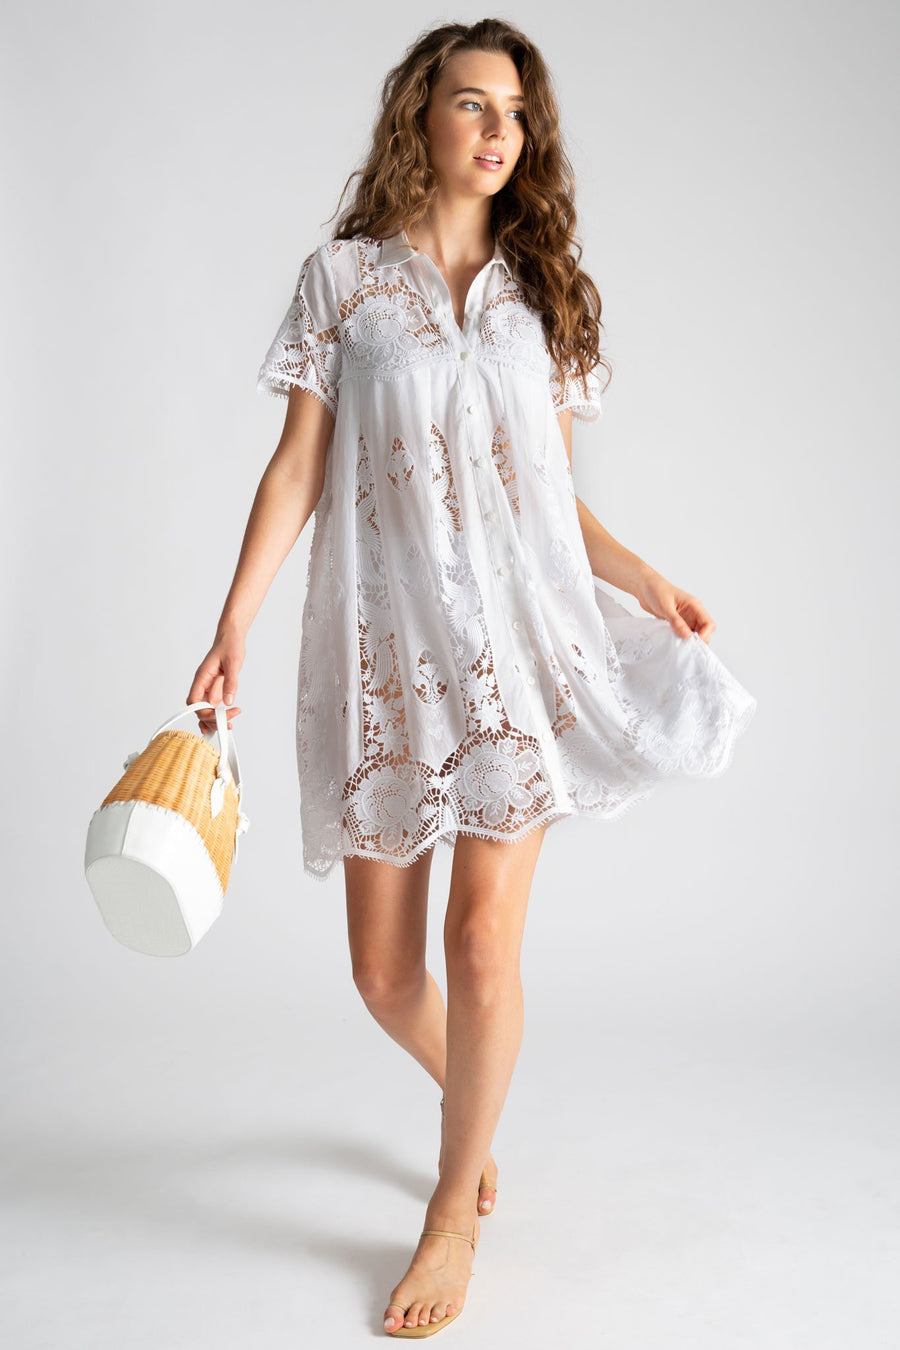 This is a photo of a woman wearing a white cotton babydoll coverup dress with lace embroidery in hibiscus inspired flowers. The dress buttons up the front and is not lined.